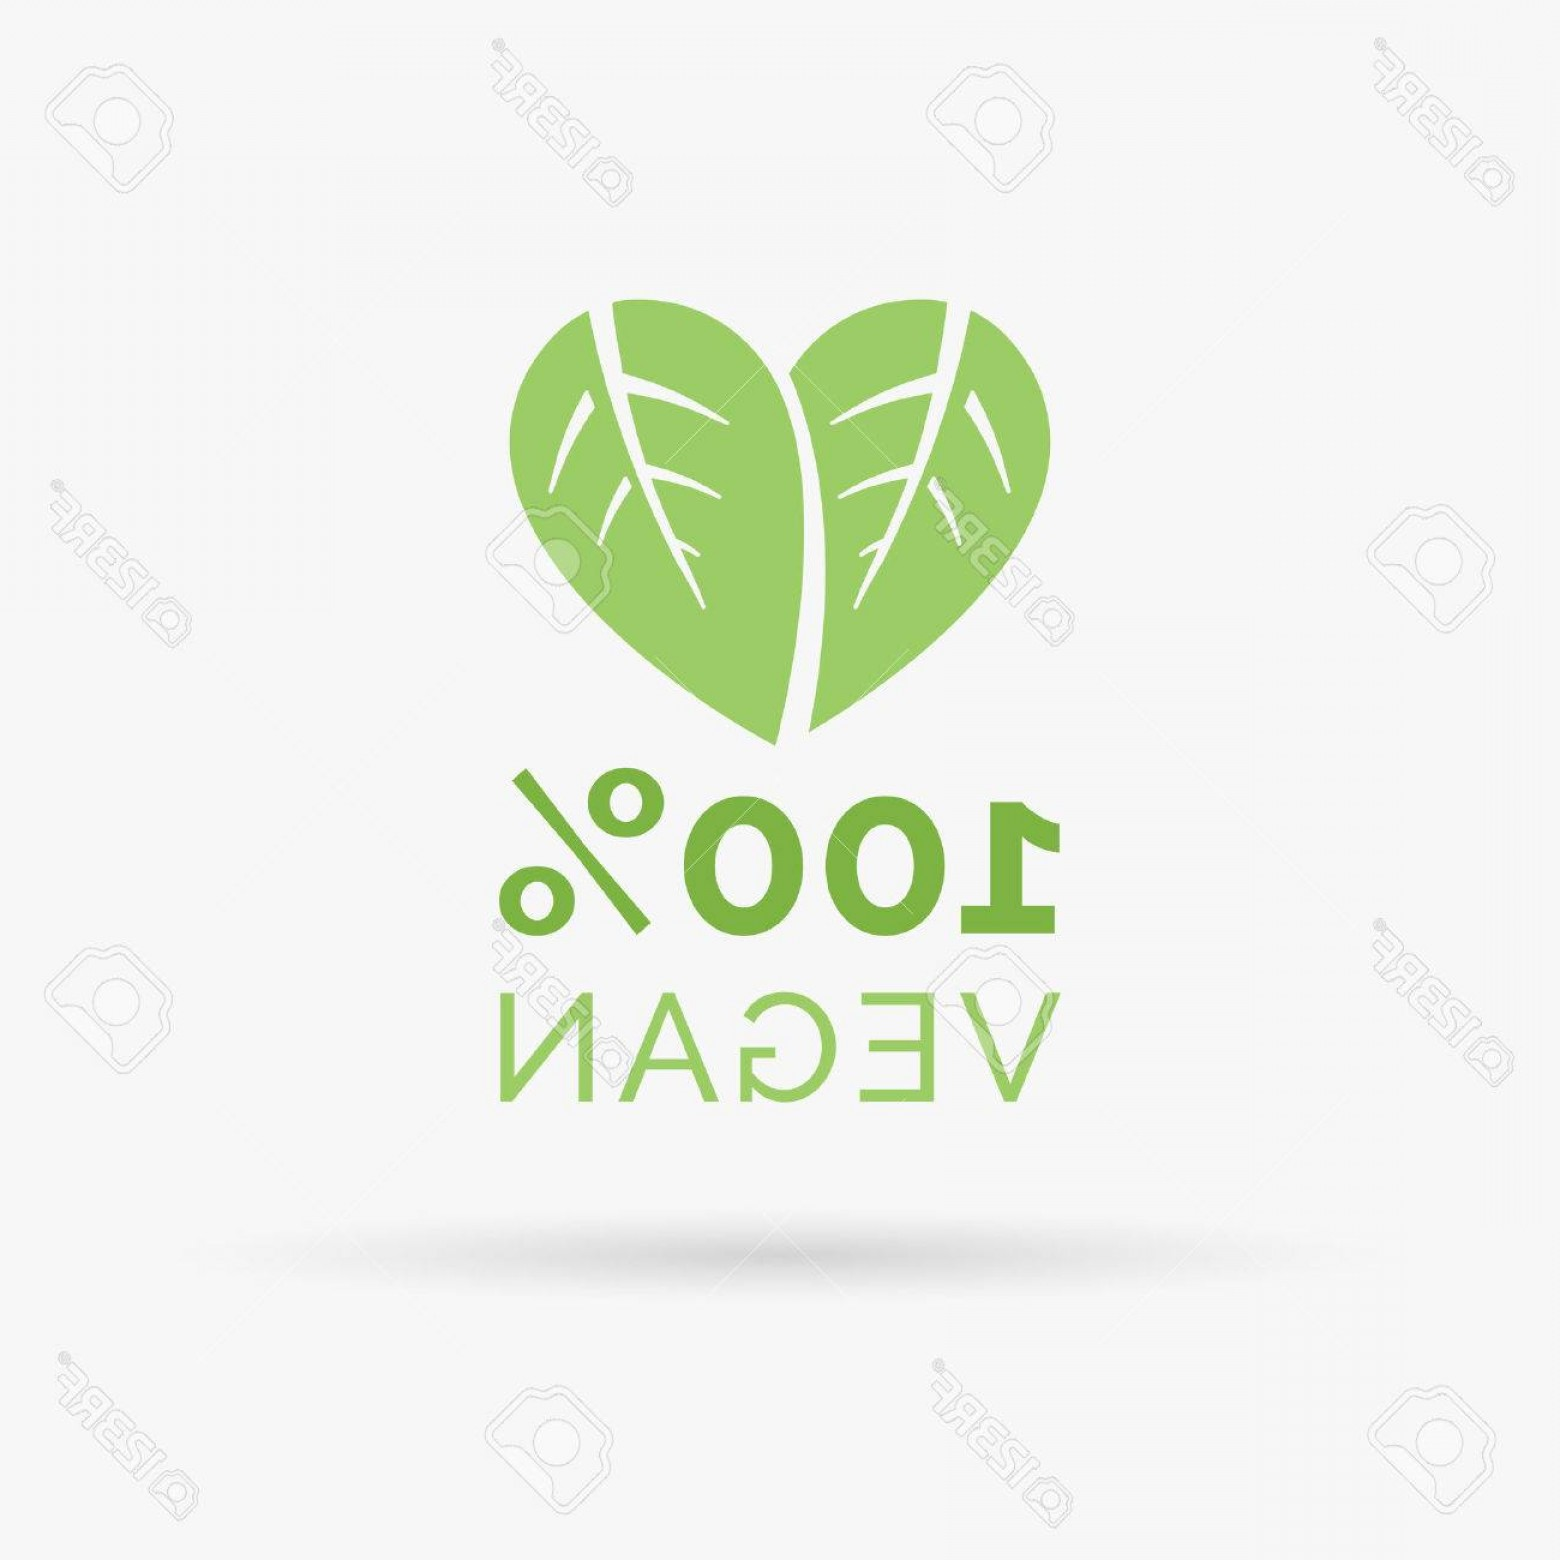 Vegan Heart Vectors: Photostock Vector Vegan Icon Design Vegan Symbol Design Vegan Food Sign With Leaves In Heart Shape Design Vect